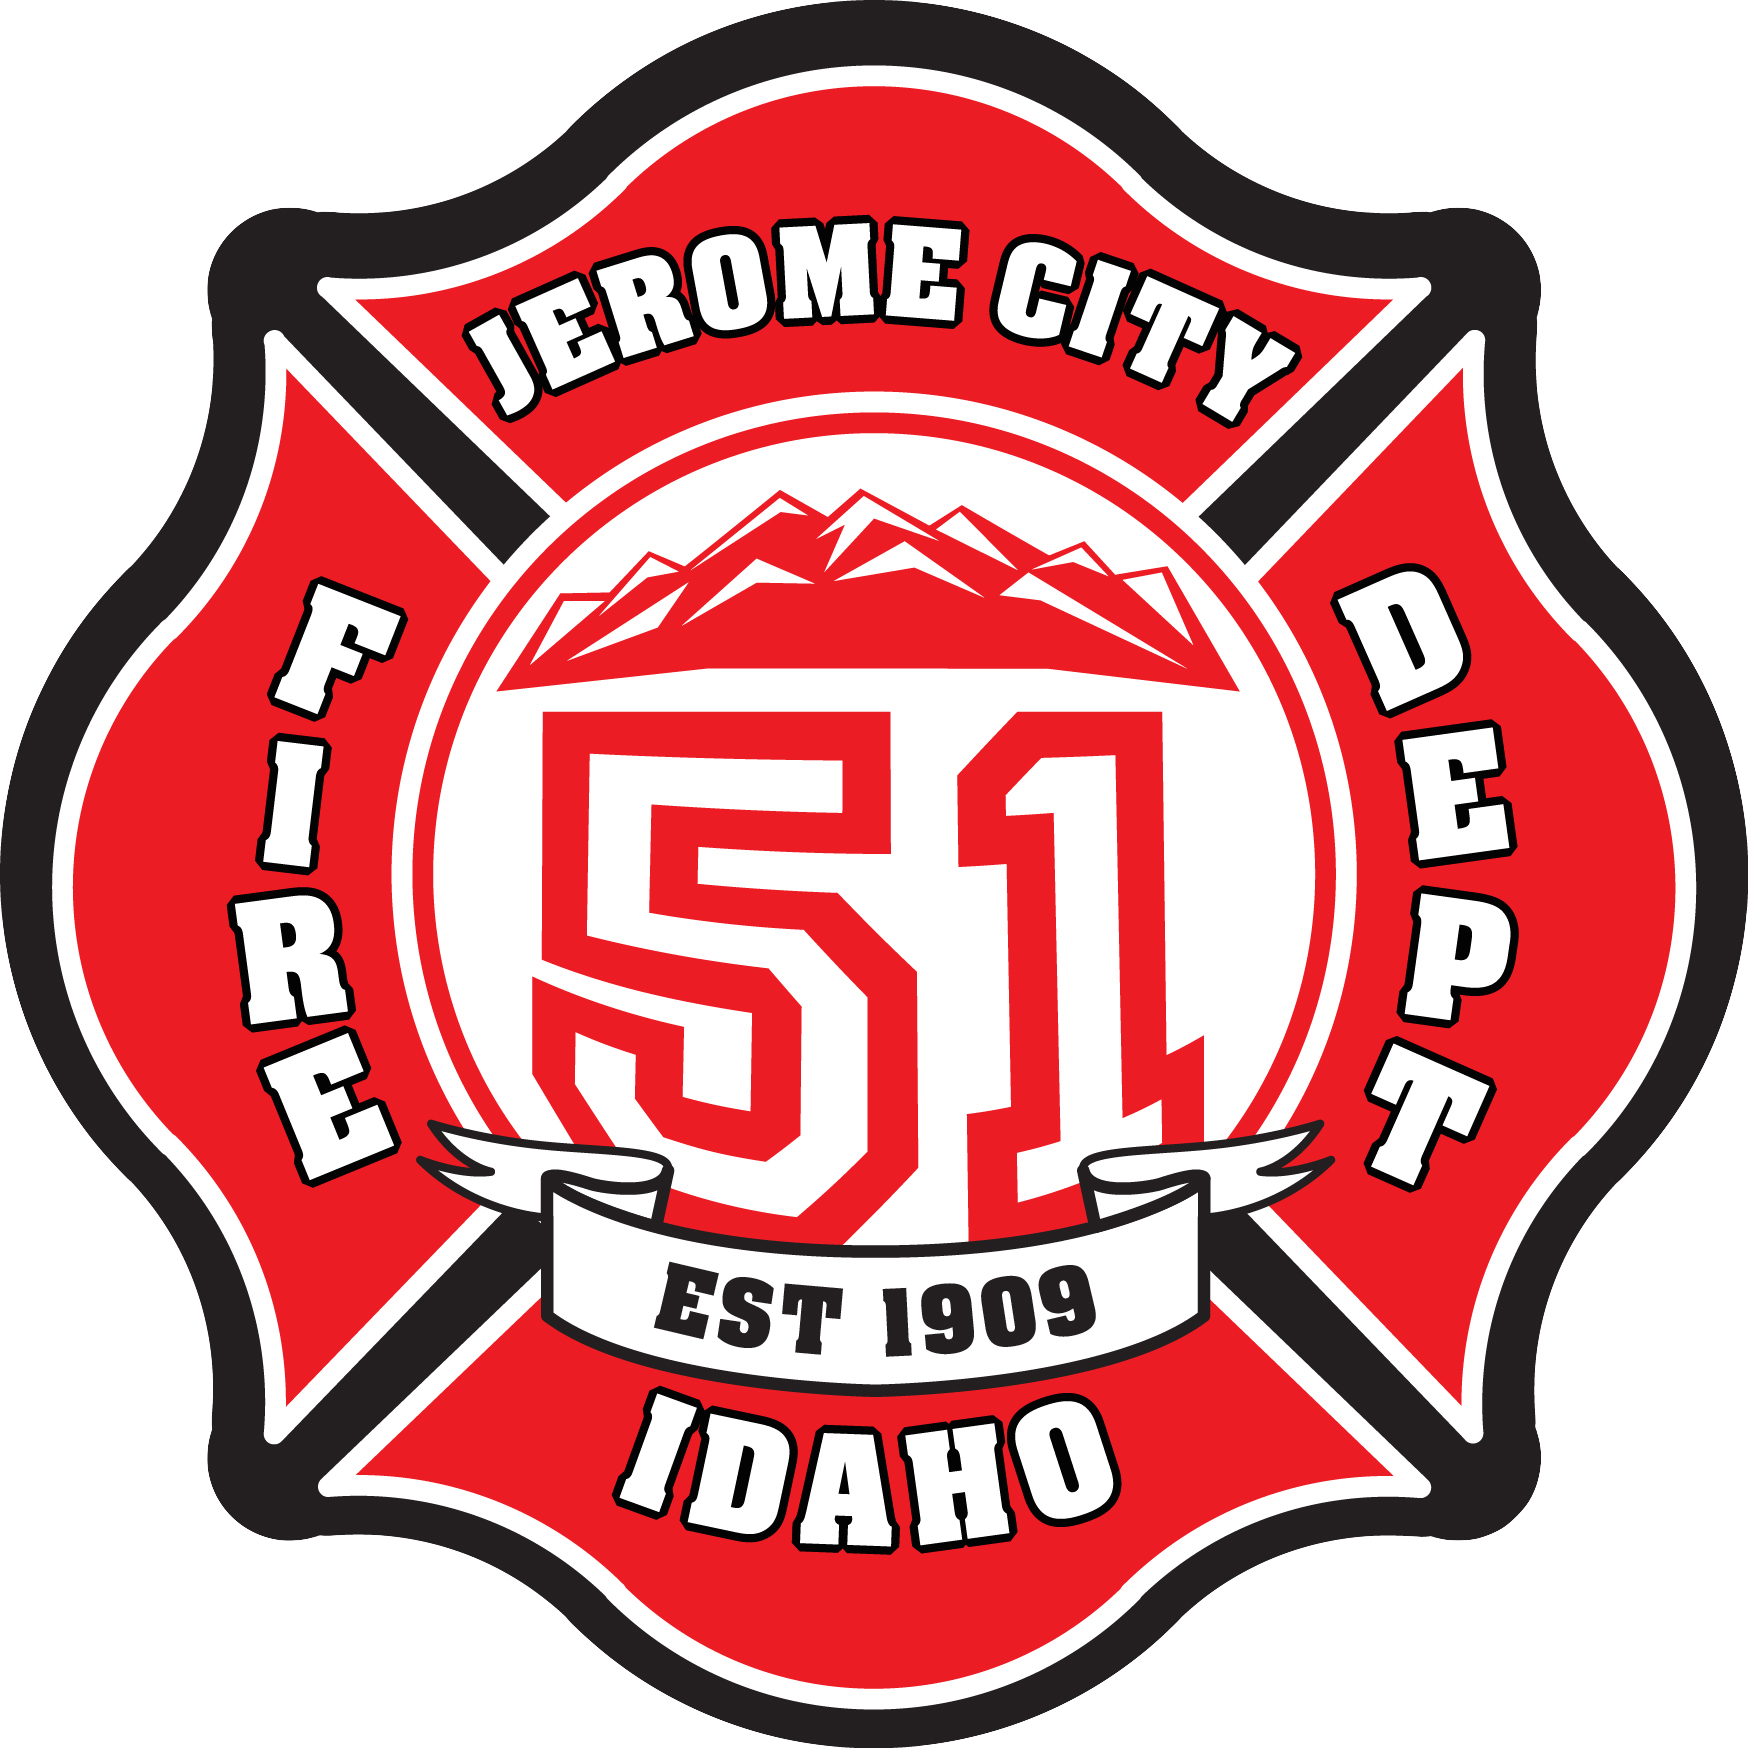 Firefighter crest png. City of jerome fire